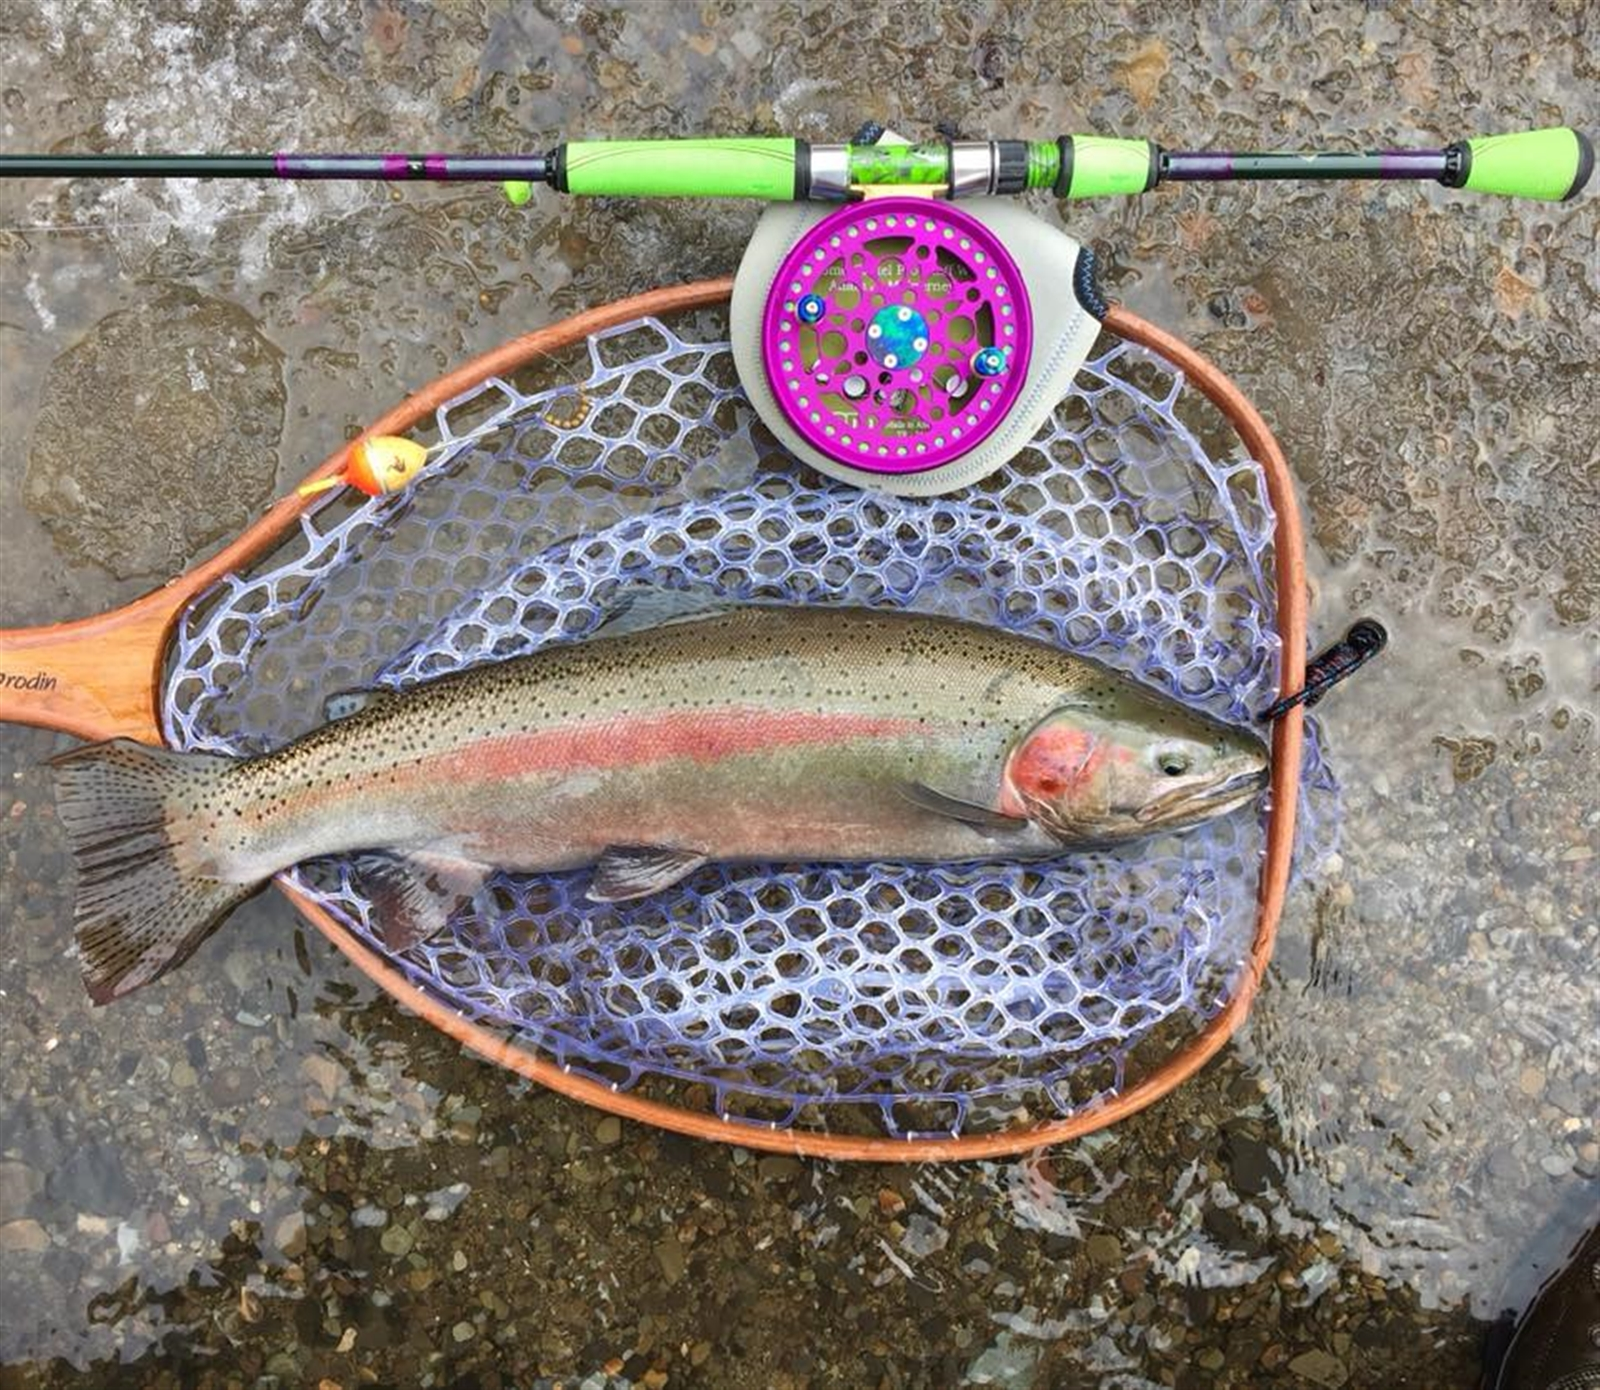 Adam McInerney of Cattaraugus hit some tribs west of Cattaraugus Creek and found the January thaw to his liking. He hit these steelhead before the rains came and messed things up Saturday night.